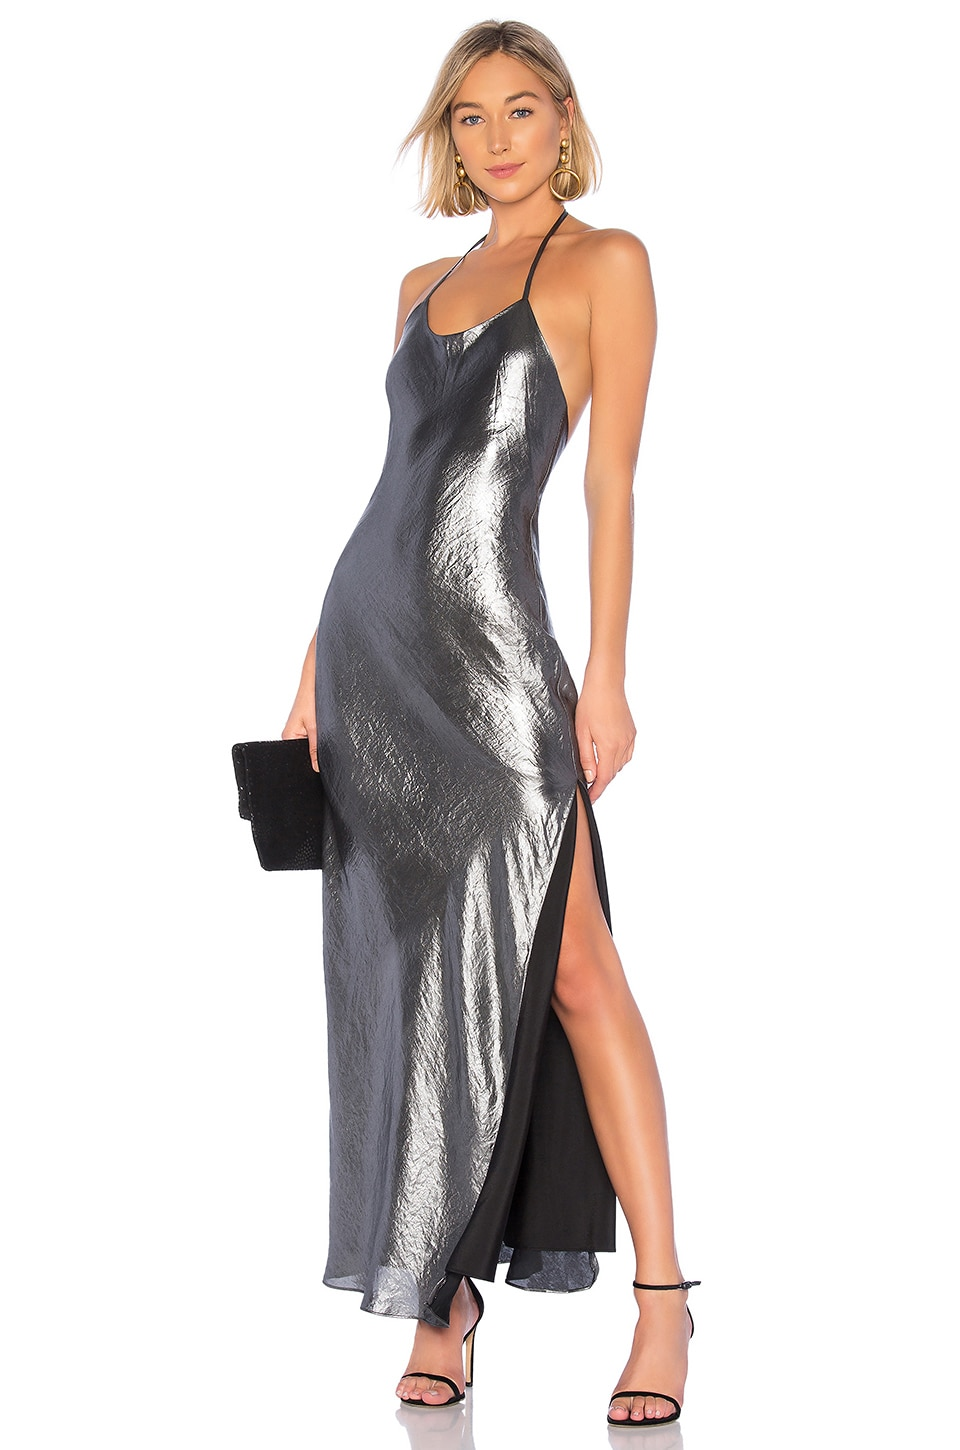 House of Harlow 1960 x REVOLVE Jasper Dress in Silver